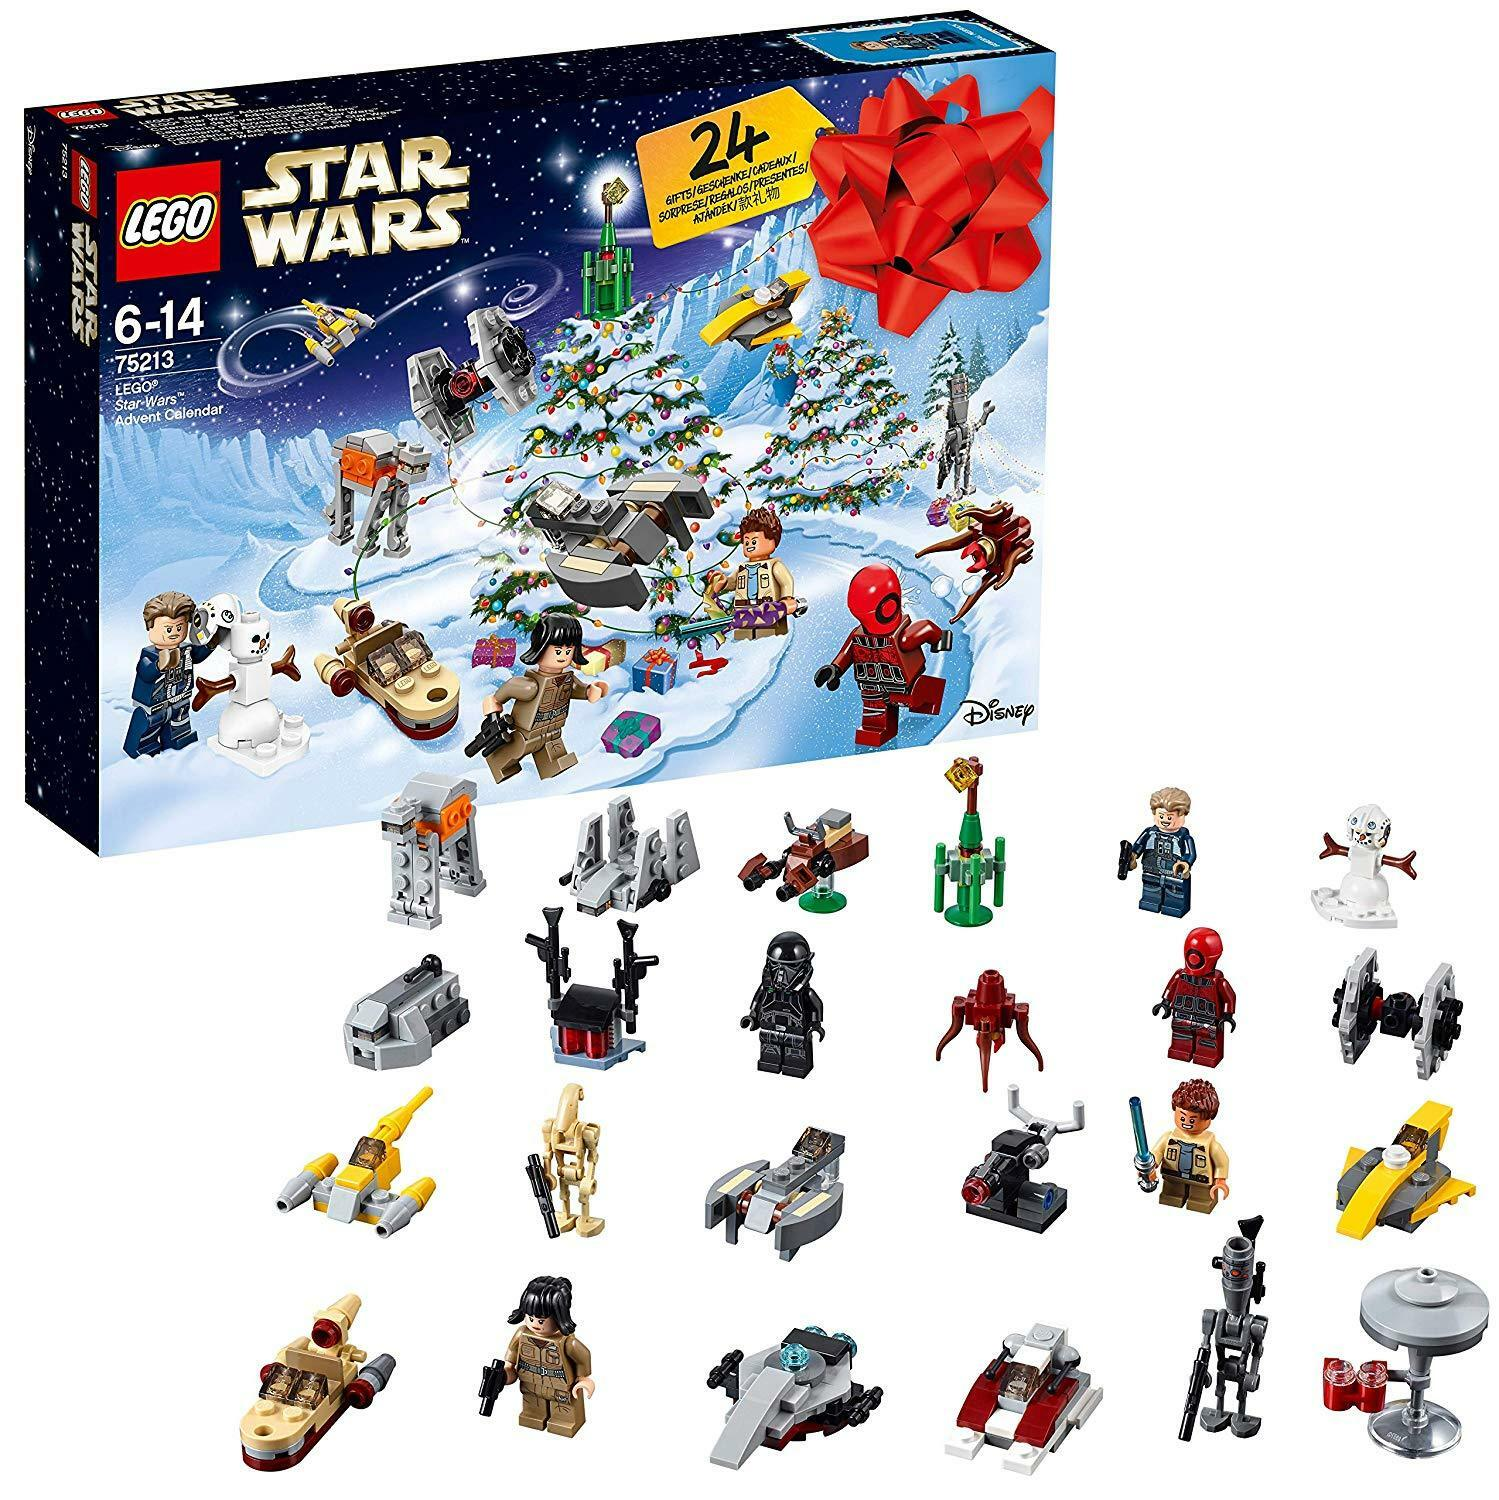 Weihnachtskalender Lego Friends.Lego Star Wars 75213 Adventskalender 2018 2018 2018 Ideal Als